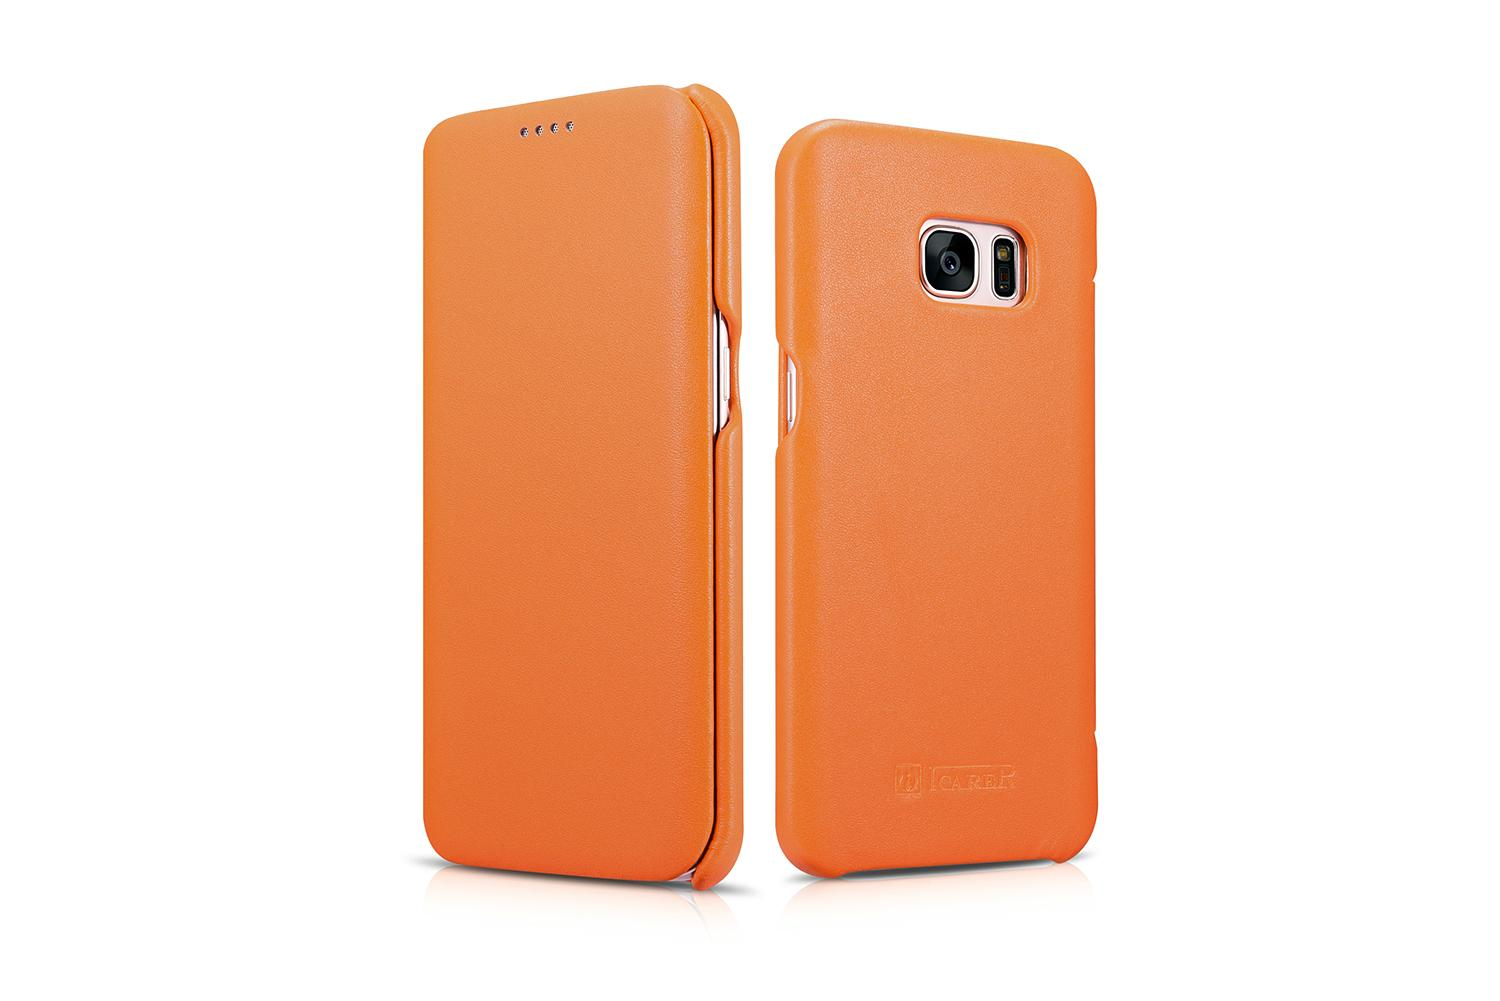 iCarer Samsung Galaxy S7 Edge Luxury Series Side Open Genuine Leather Case 5